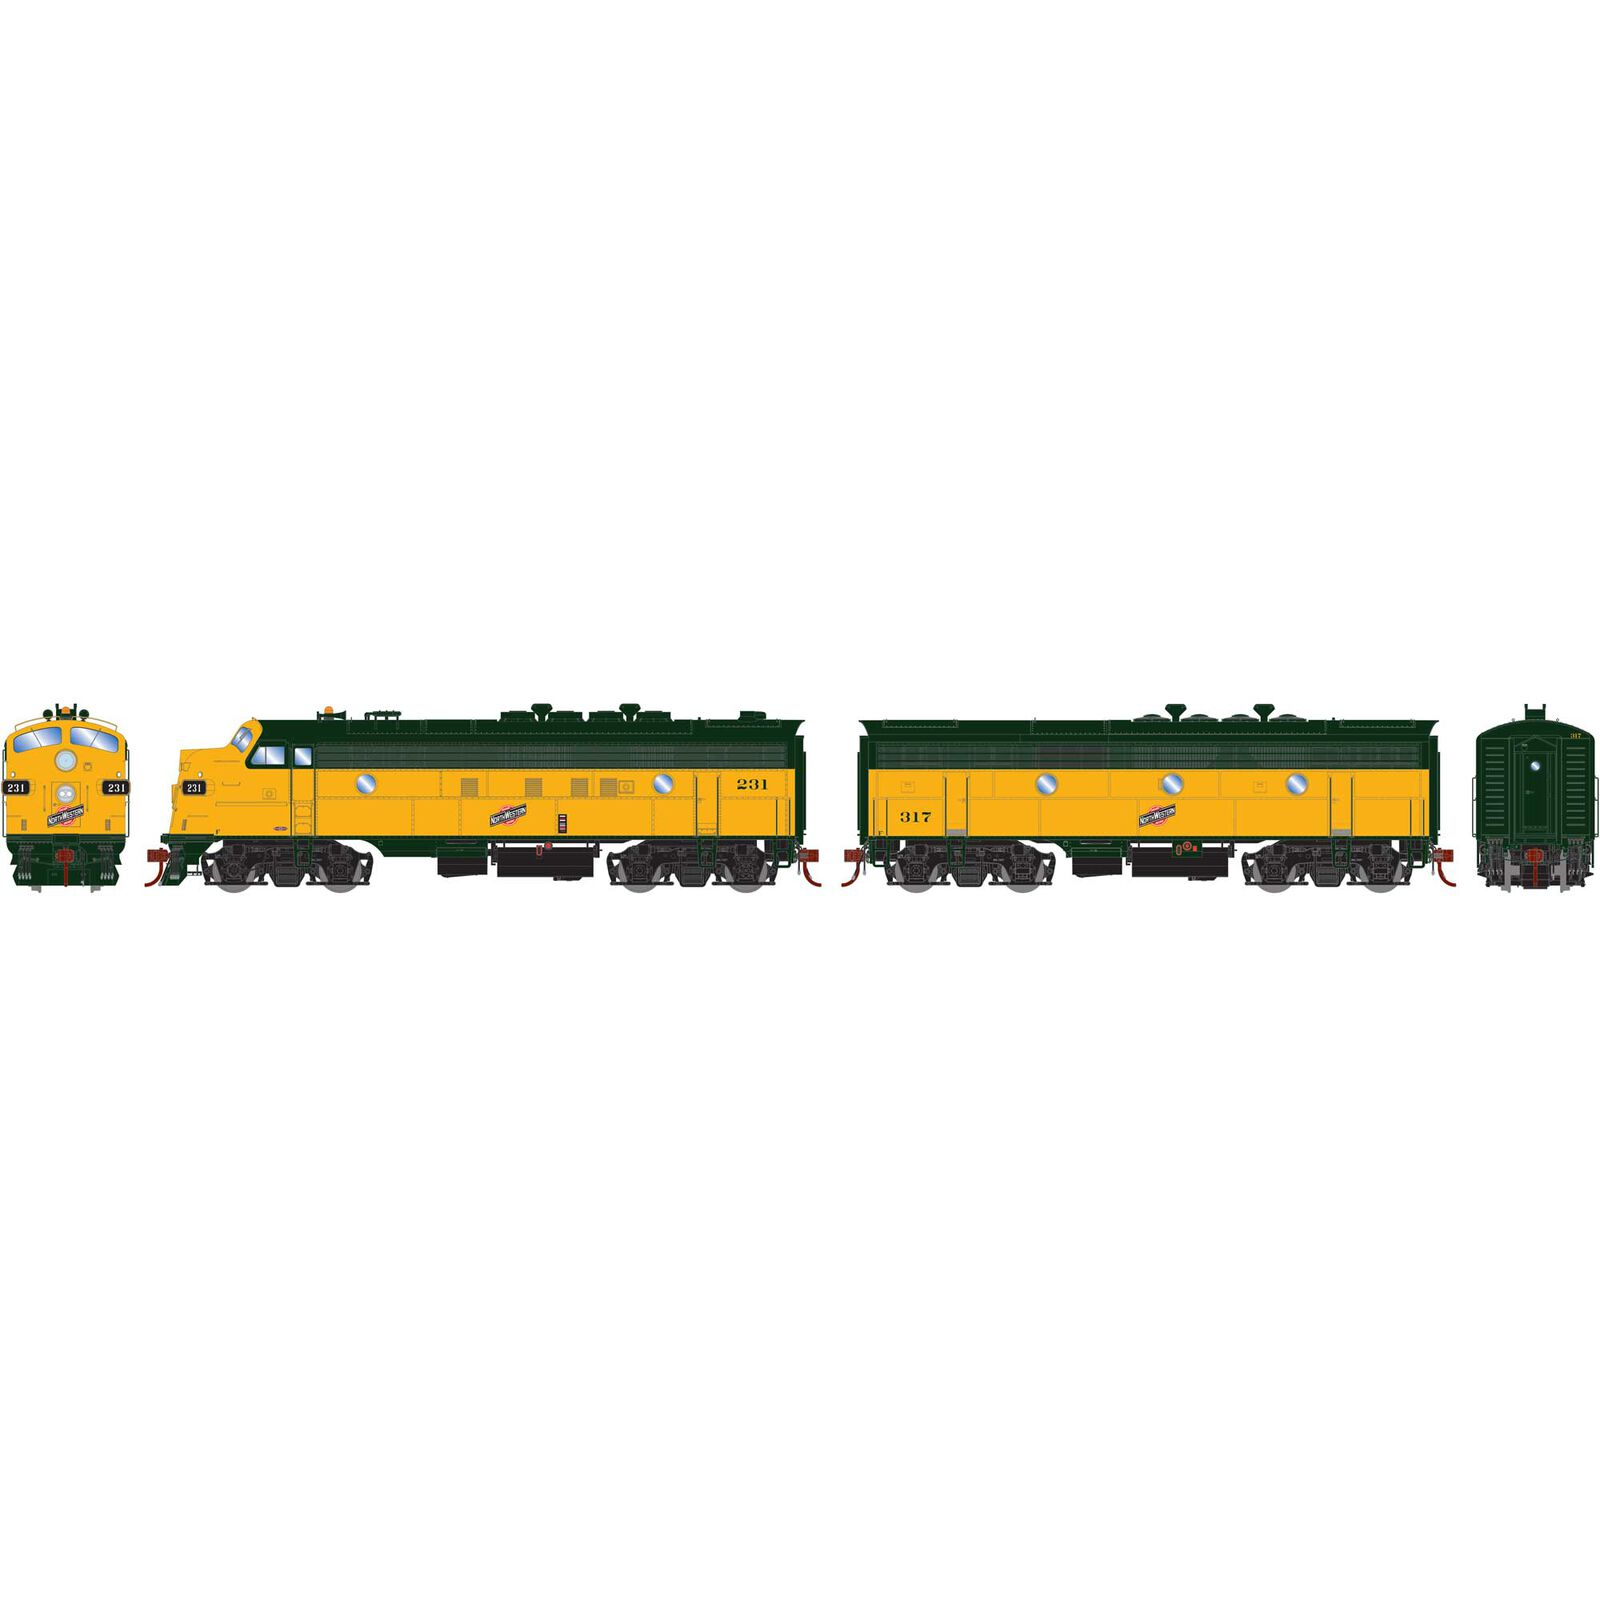 HO FP7A F7B with DCC & Sound C&NW #231 #317